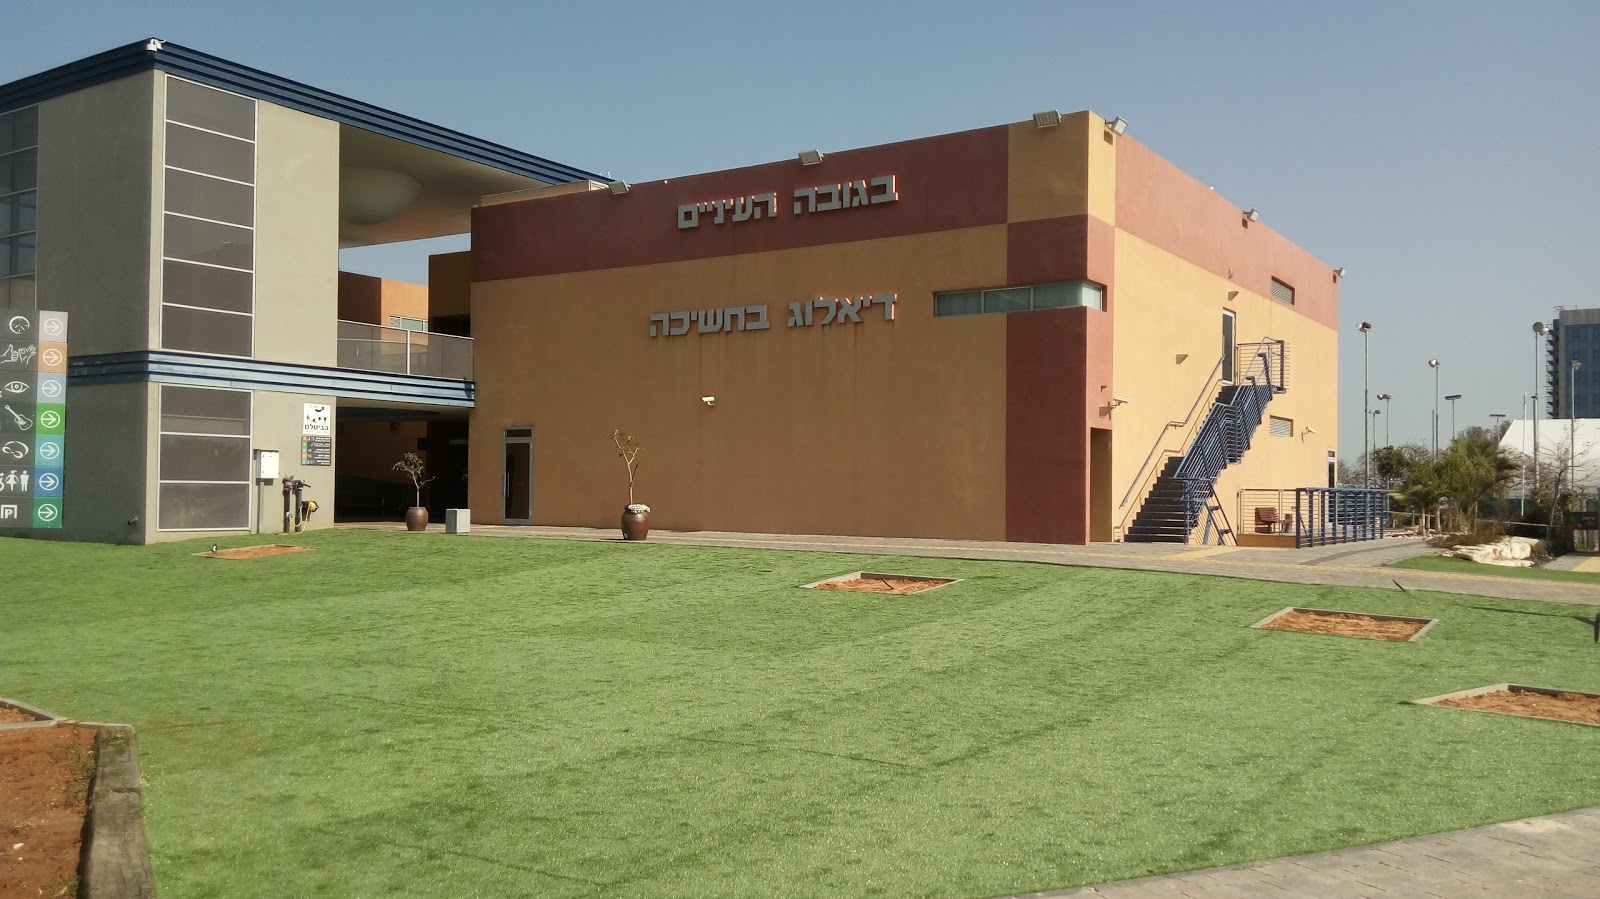 Visit Israeli Children's Museum on your trip to Holon or Israel